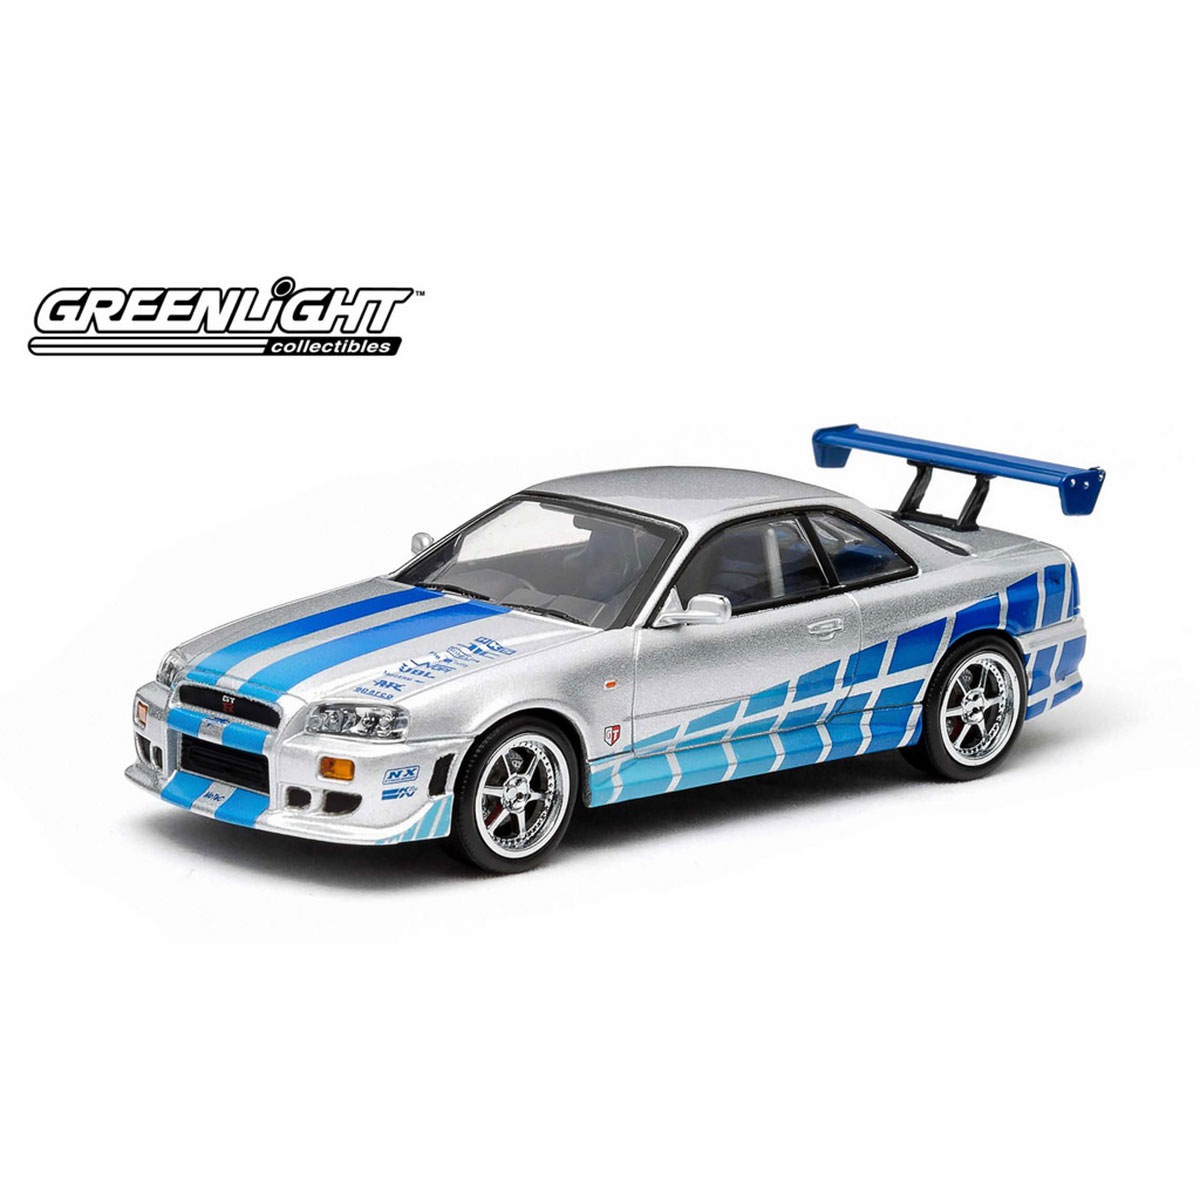 Greenlight Fast And Furious 1:43 Brian's 1999 Nissan